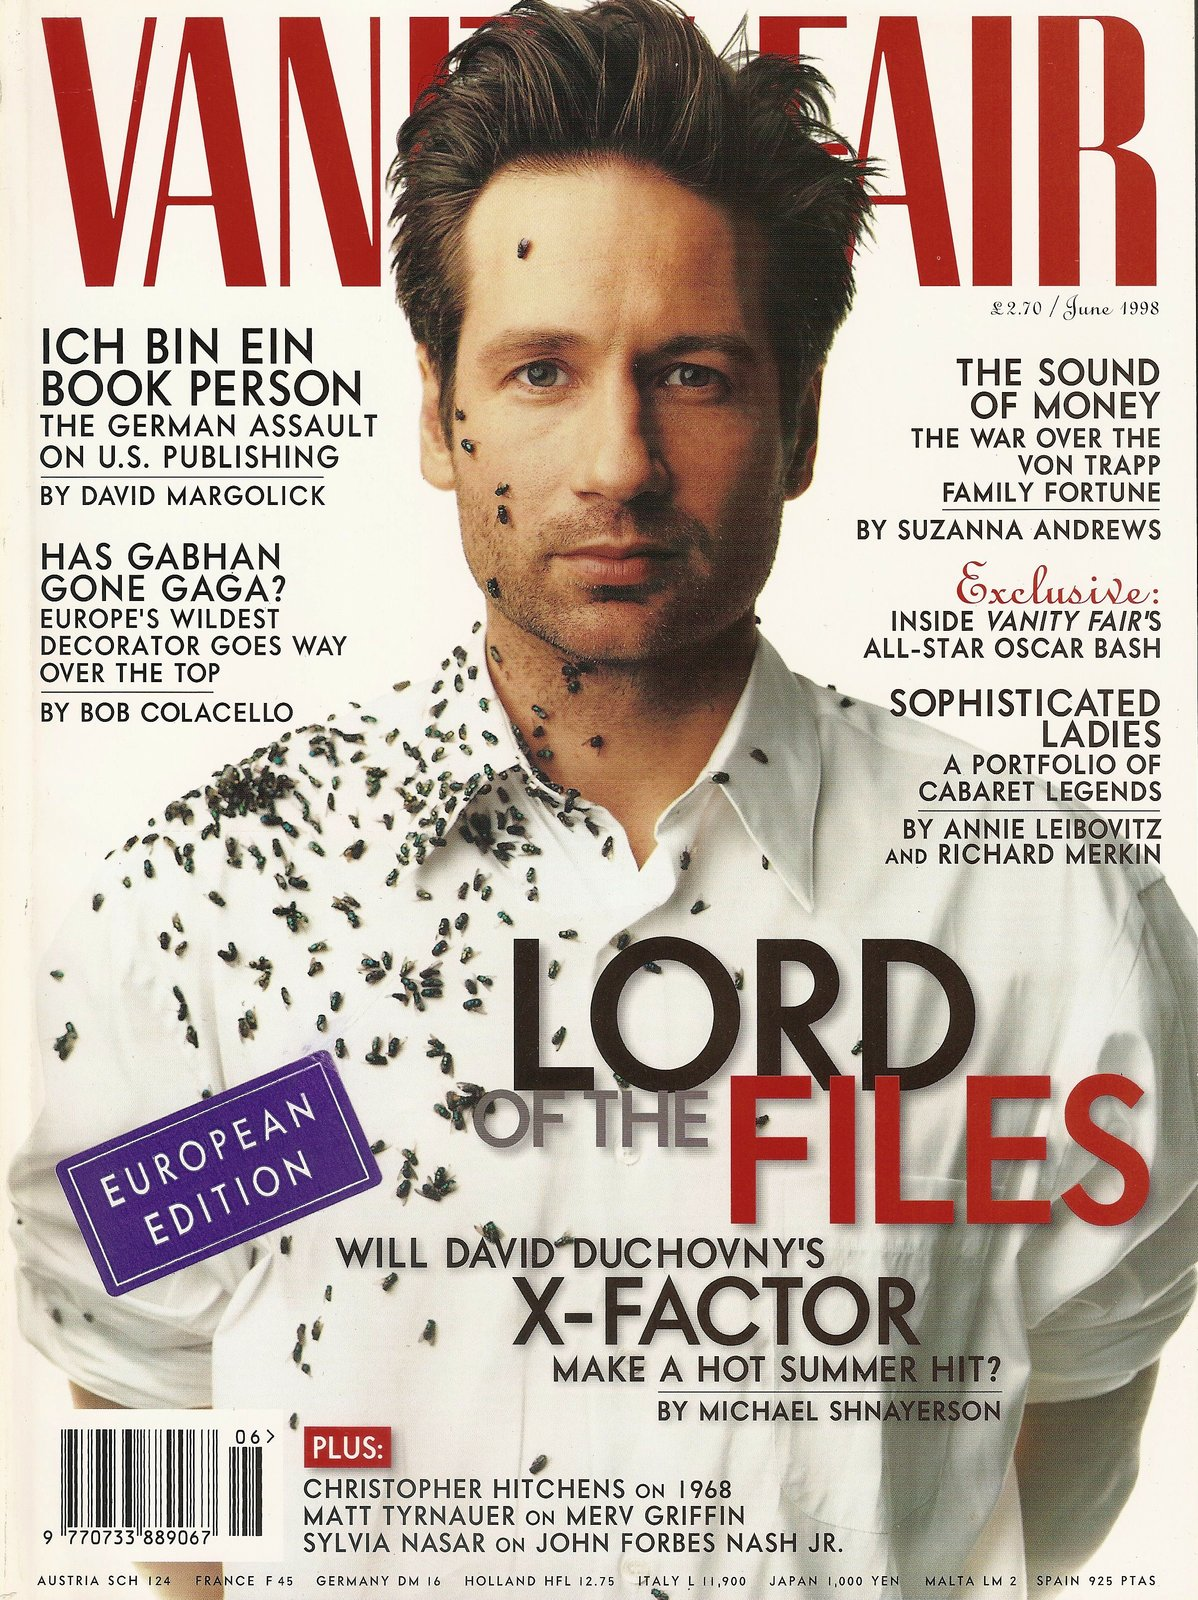 vanity fair 454 uk edition june 1988 x files david duchovny lord of files cover other